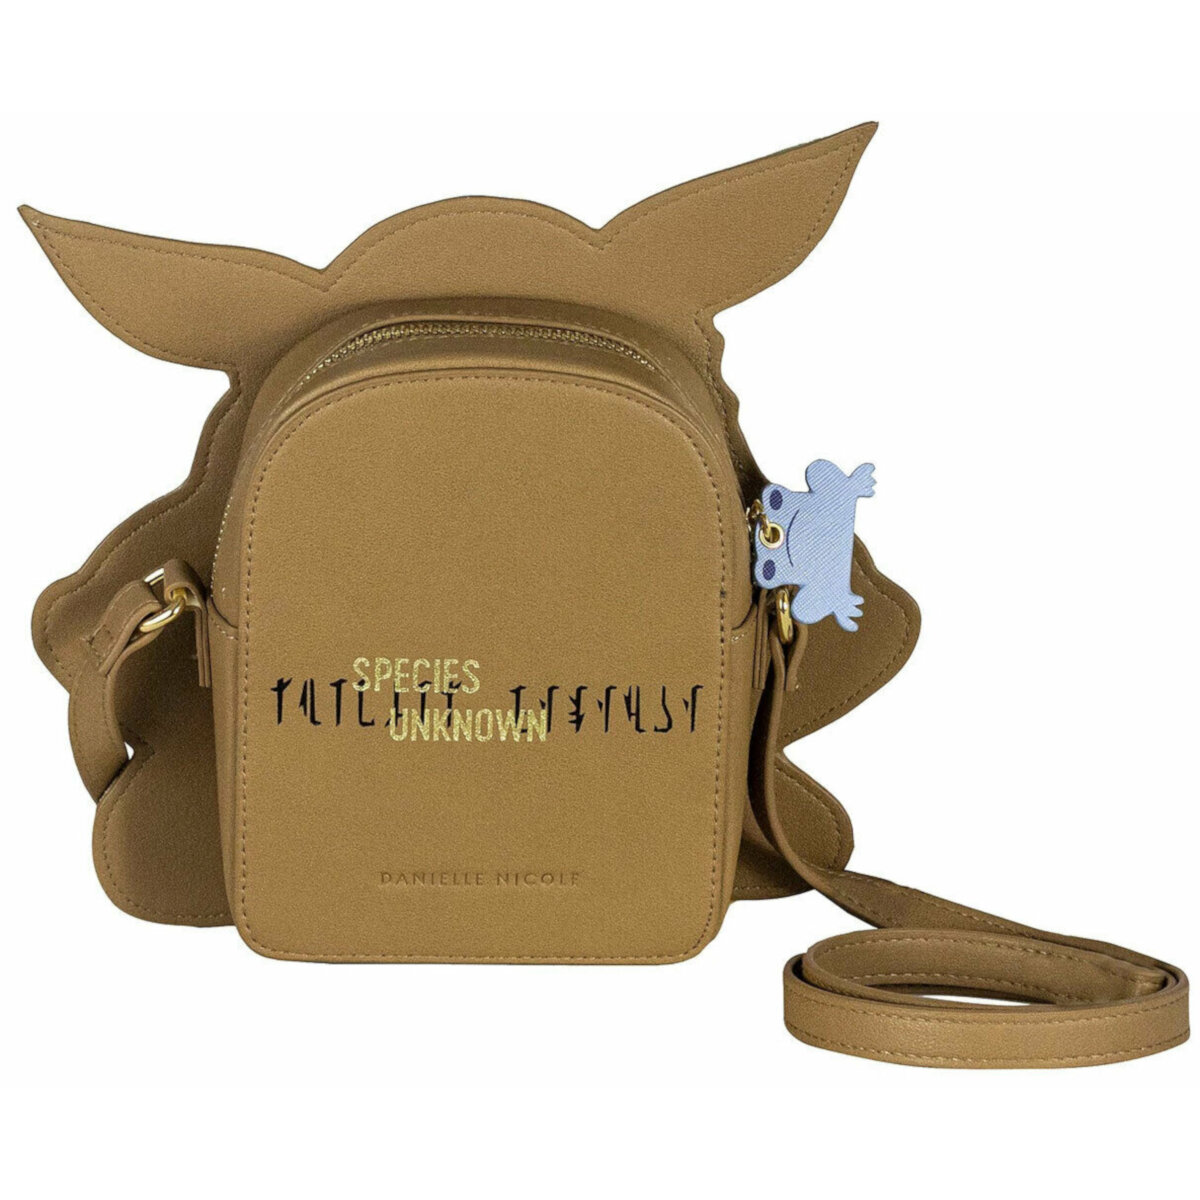 The-Child-Species-Unkown-Crossbody-Second-Alternate-Image